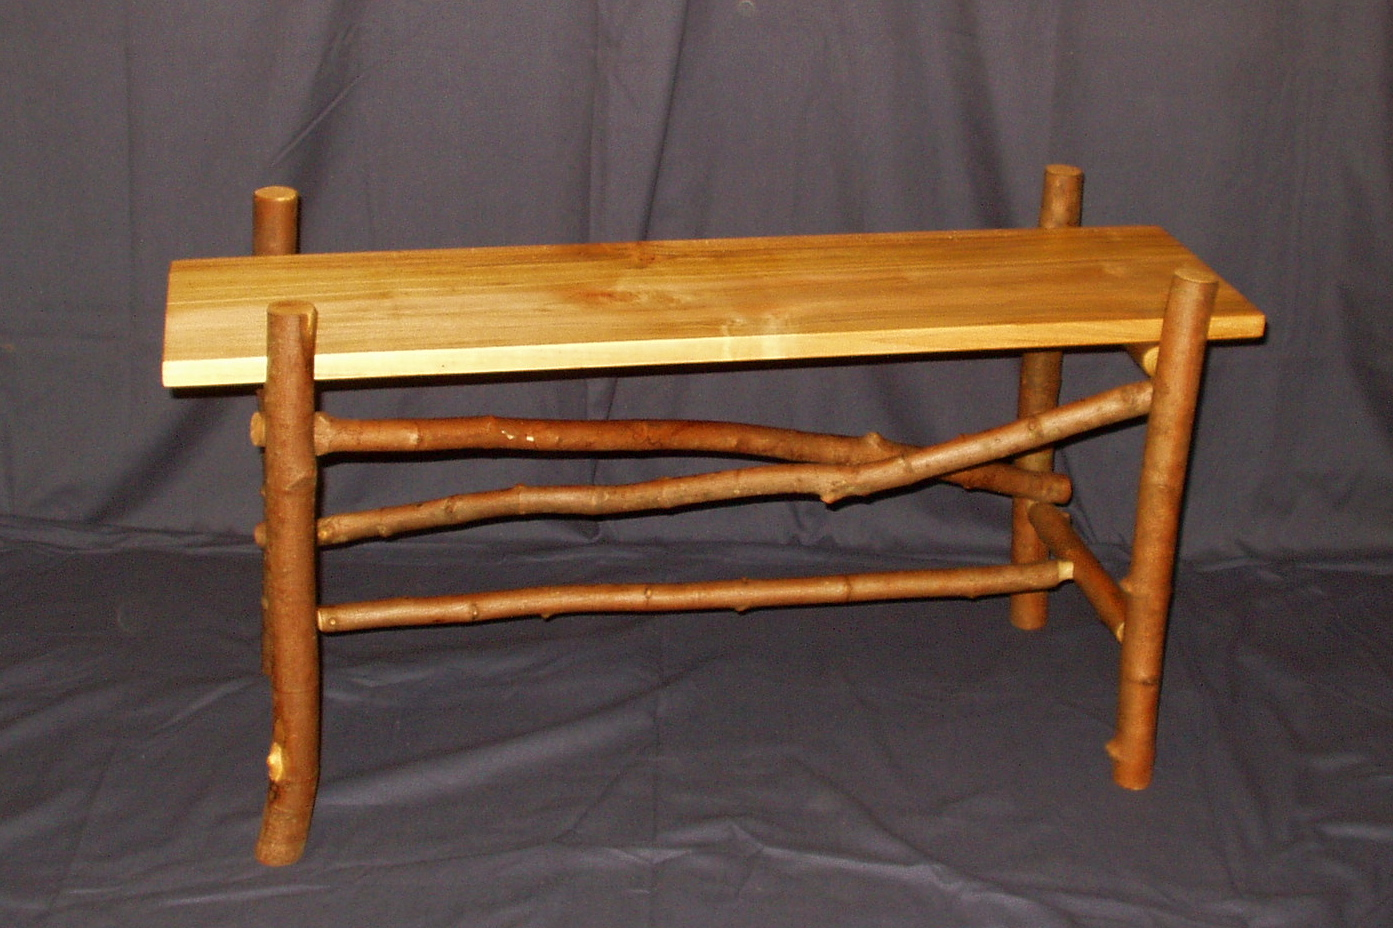 Native Twig Furniture: Benches